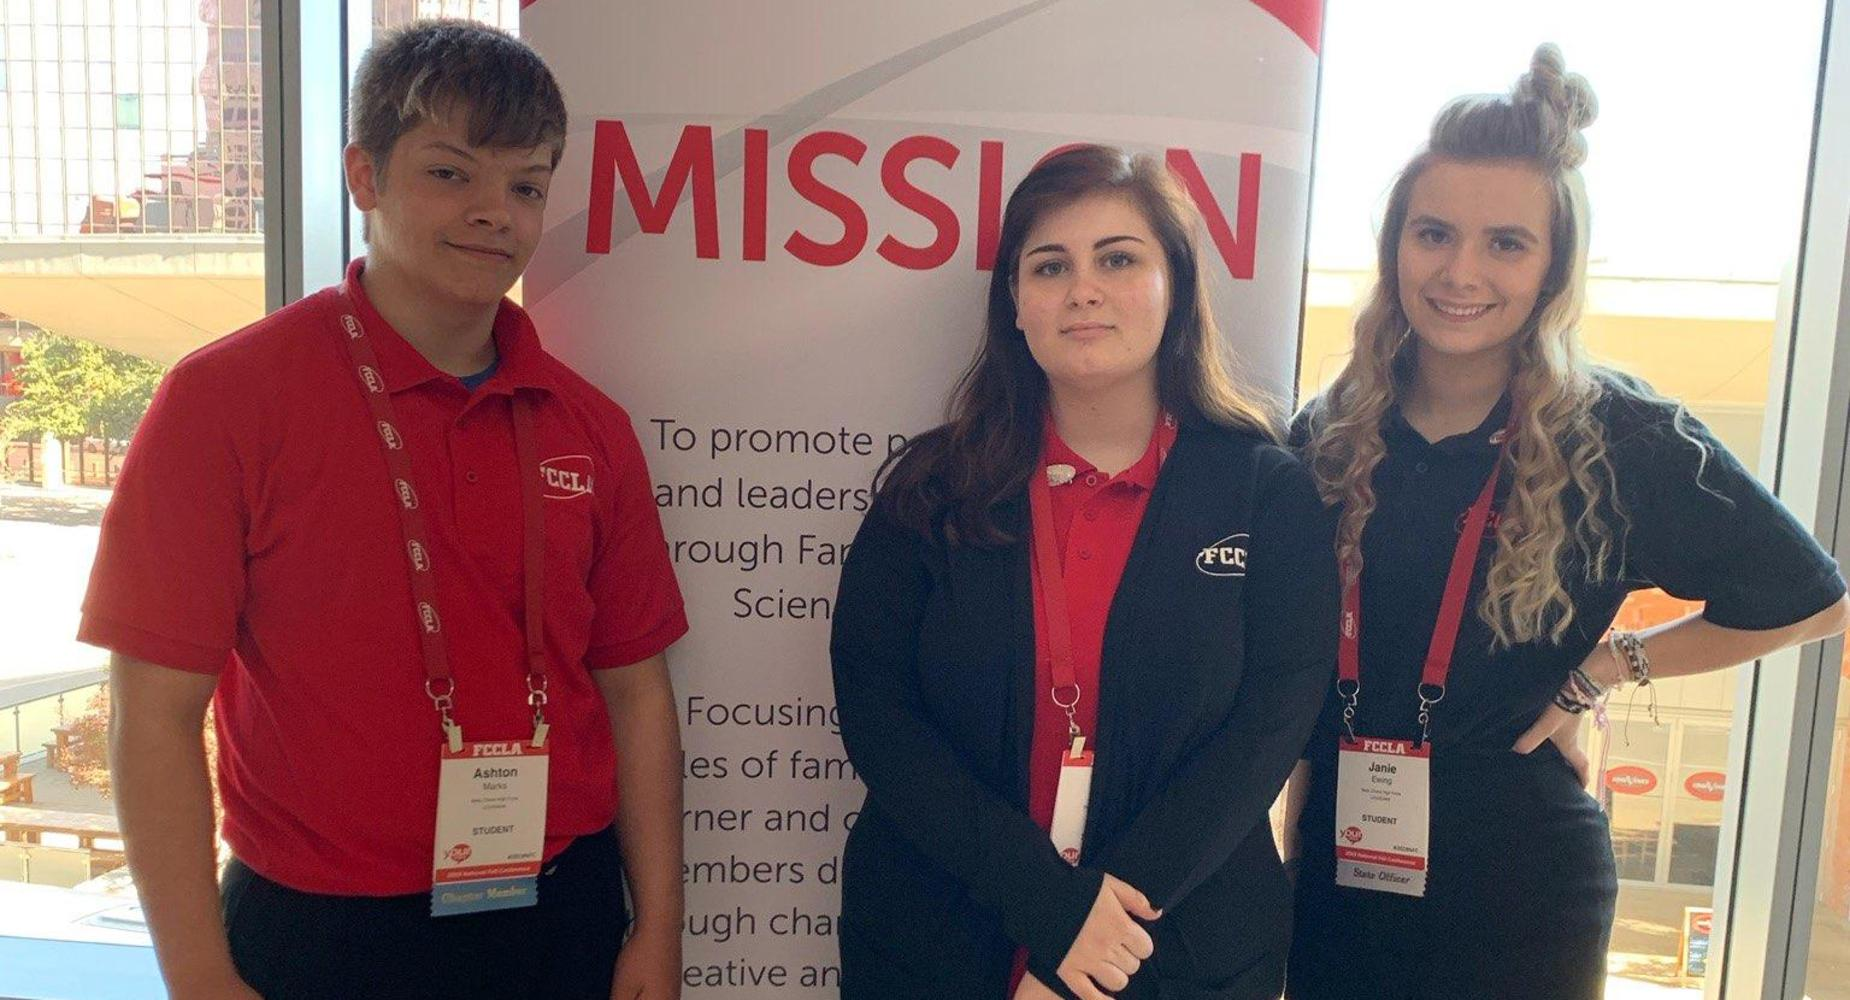 Student attended the FCCLA convention